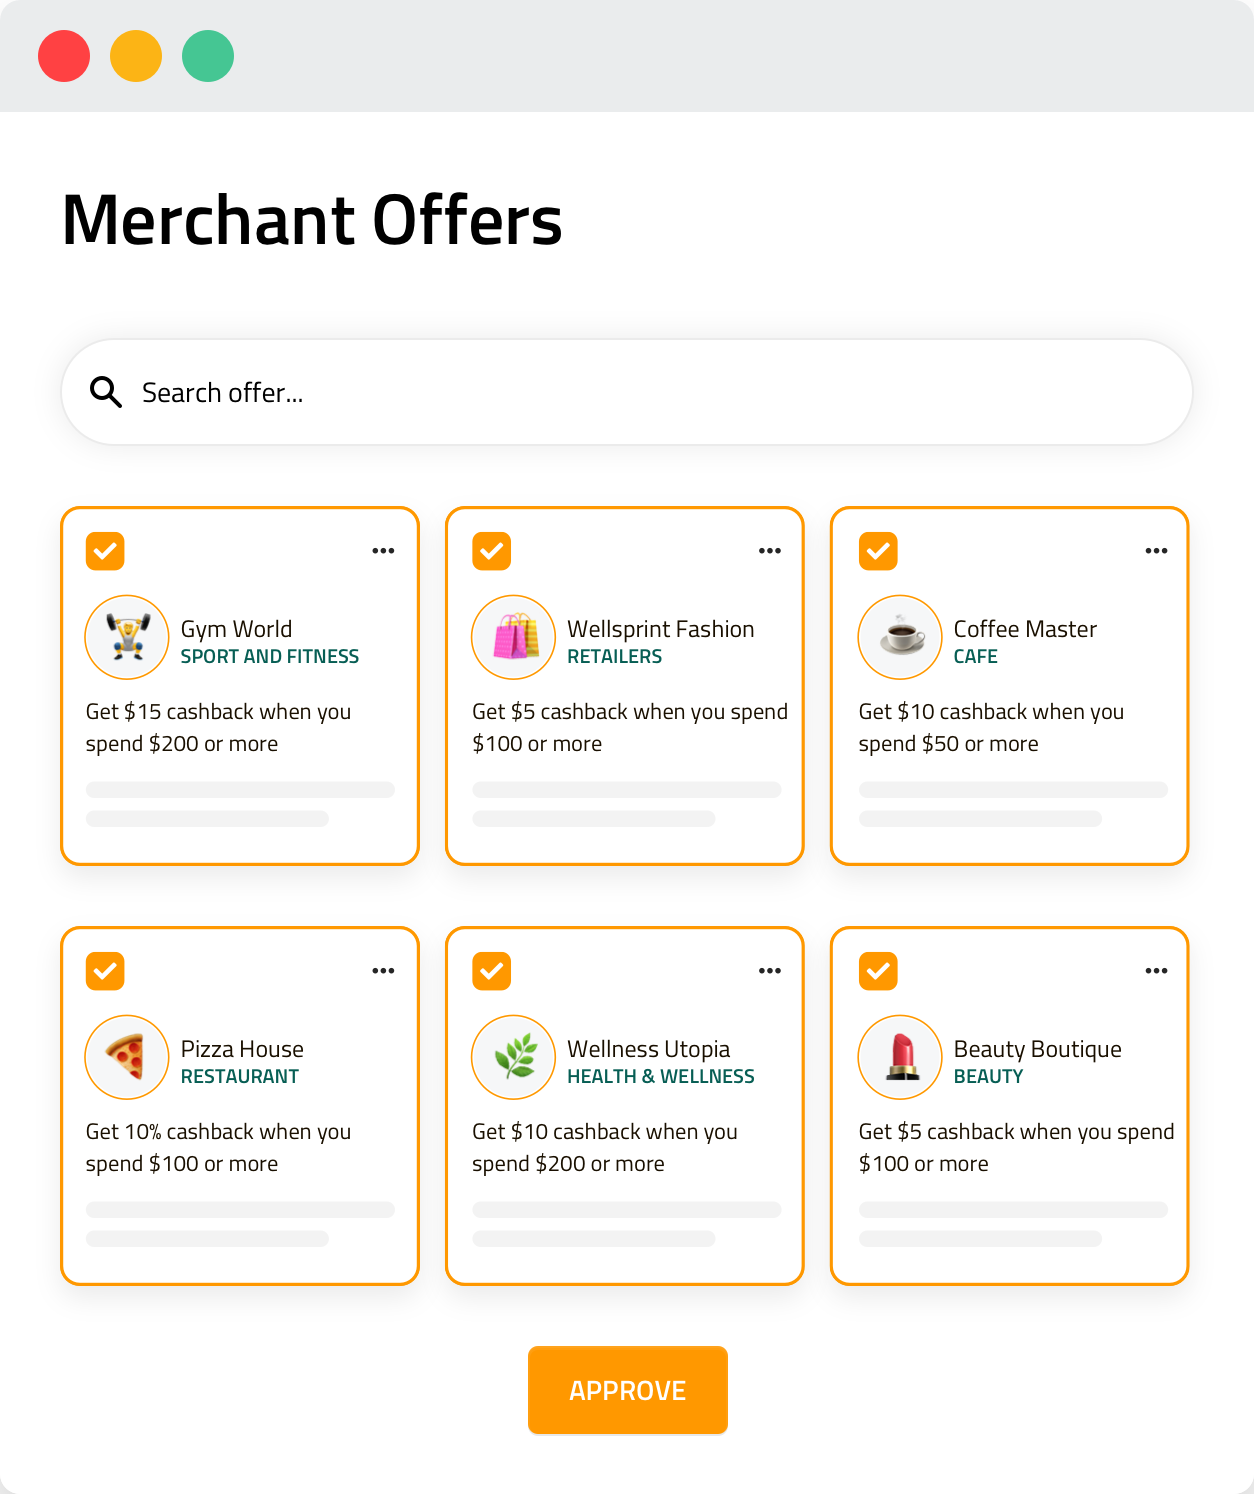 Moderate Offers Review and approve offers individually or in bulk before the offers get listed on the platform.